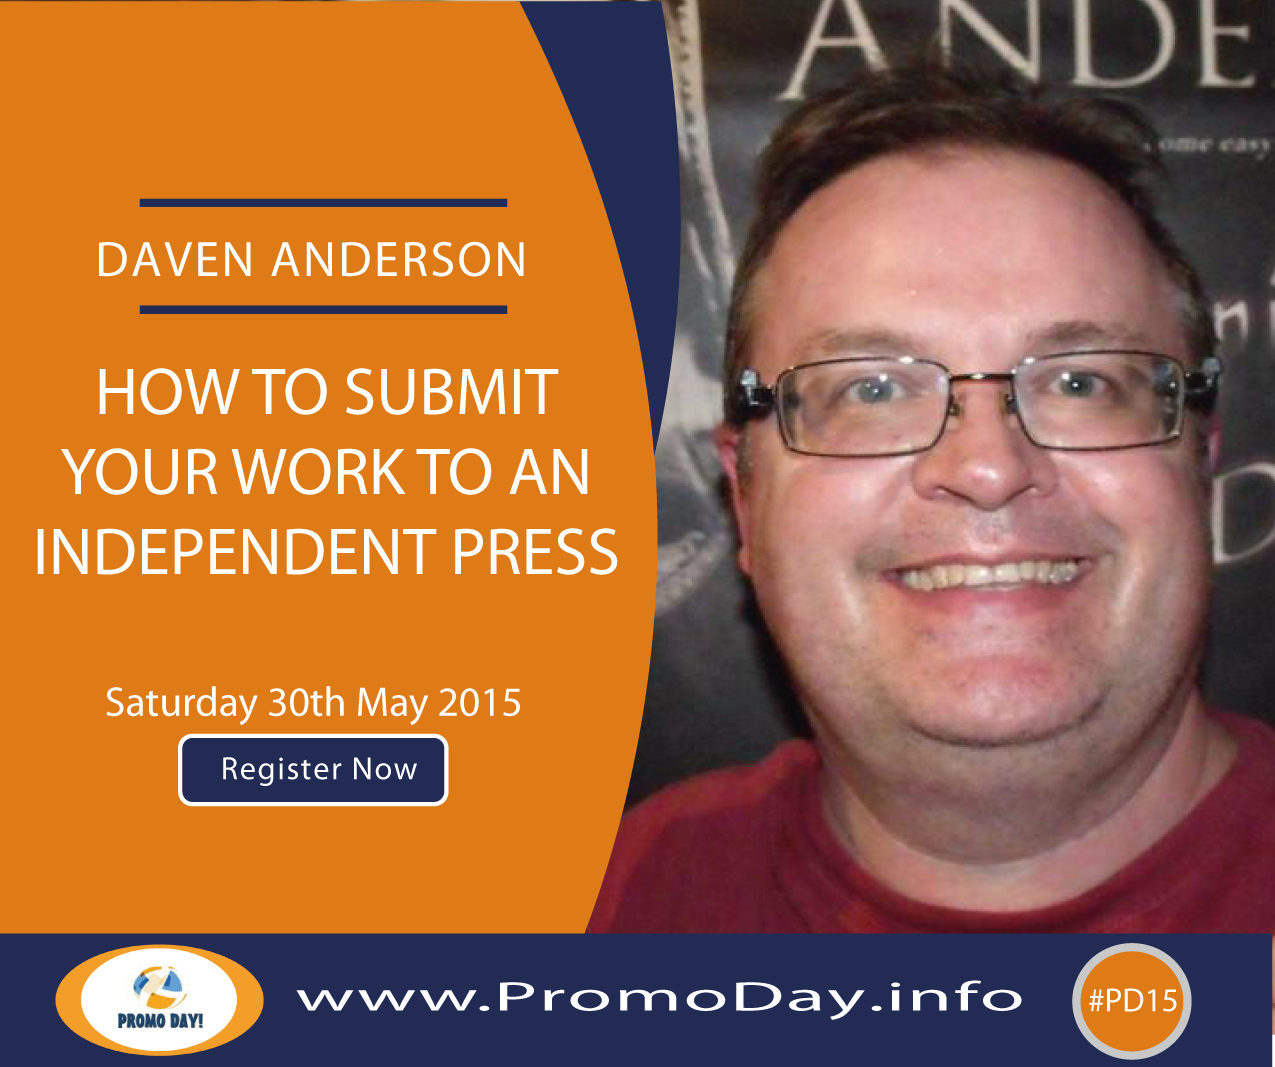 #PD15 Webinar: How To Submit Your Work To An Independent Press with Daven Anderson, www.PromoDay.info #Free #Event